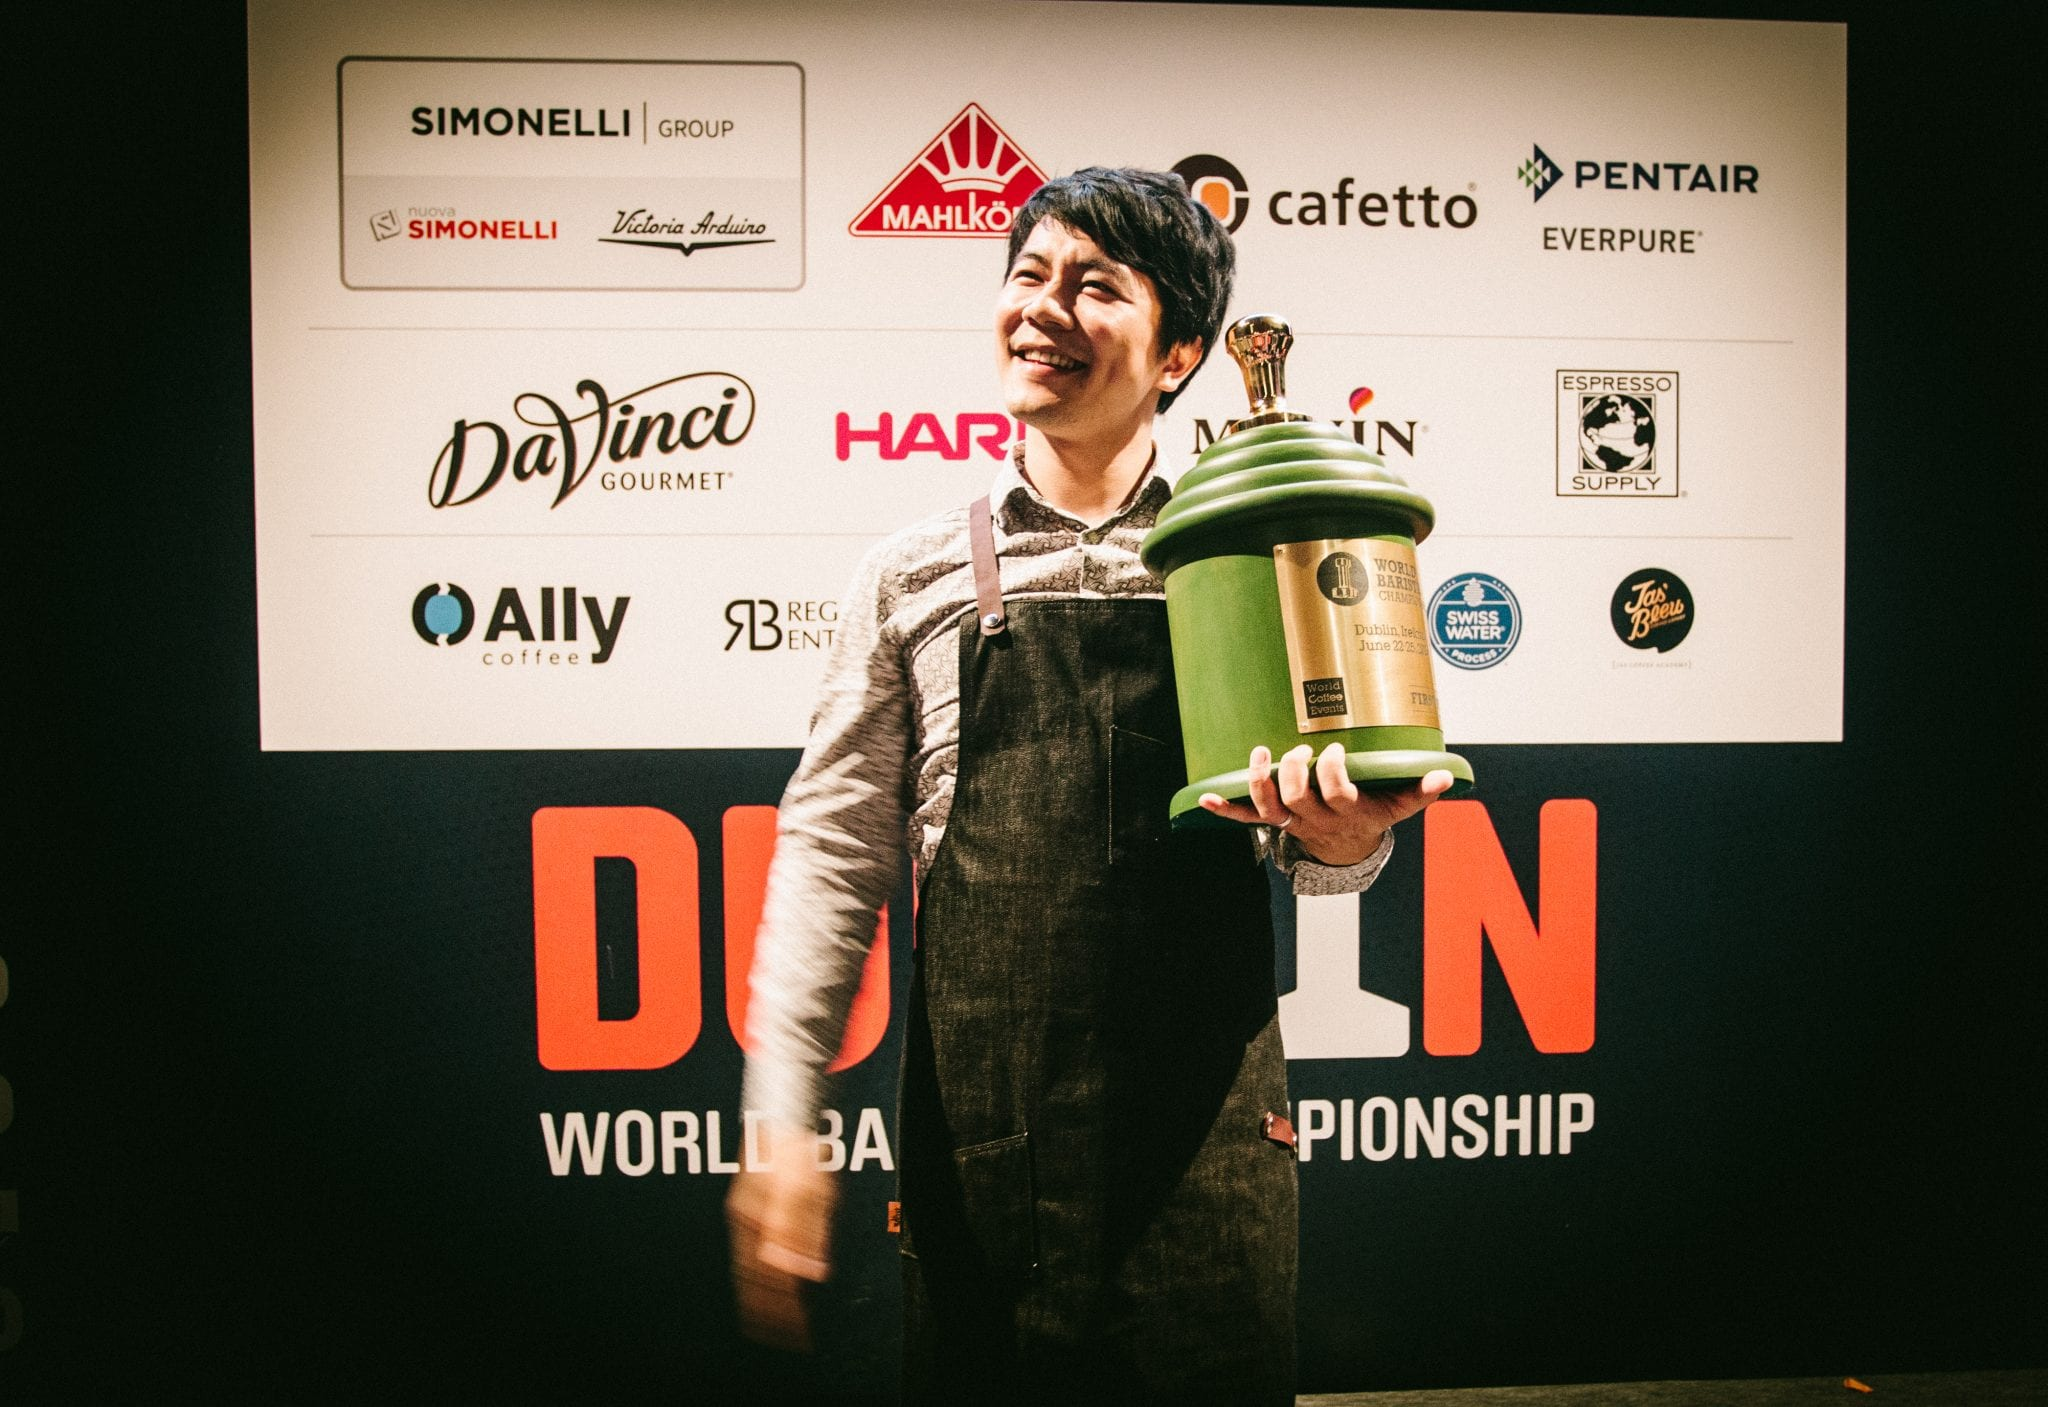 Berg Wu, 2016 World Barista Champion, with his trohpy